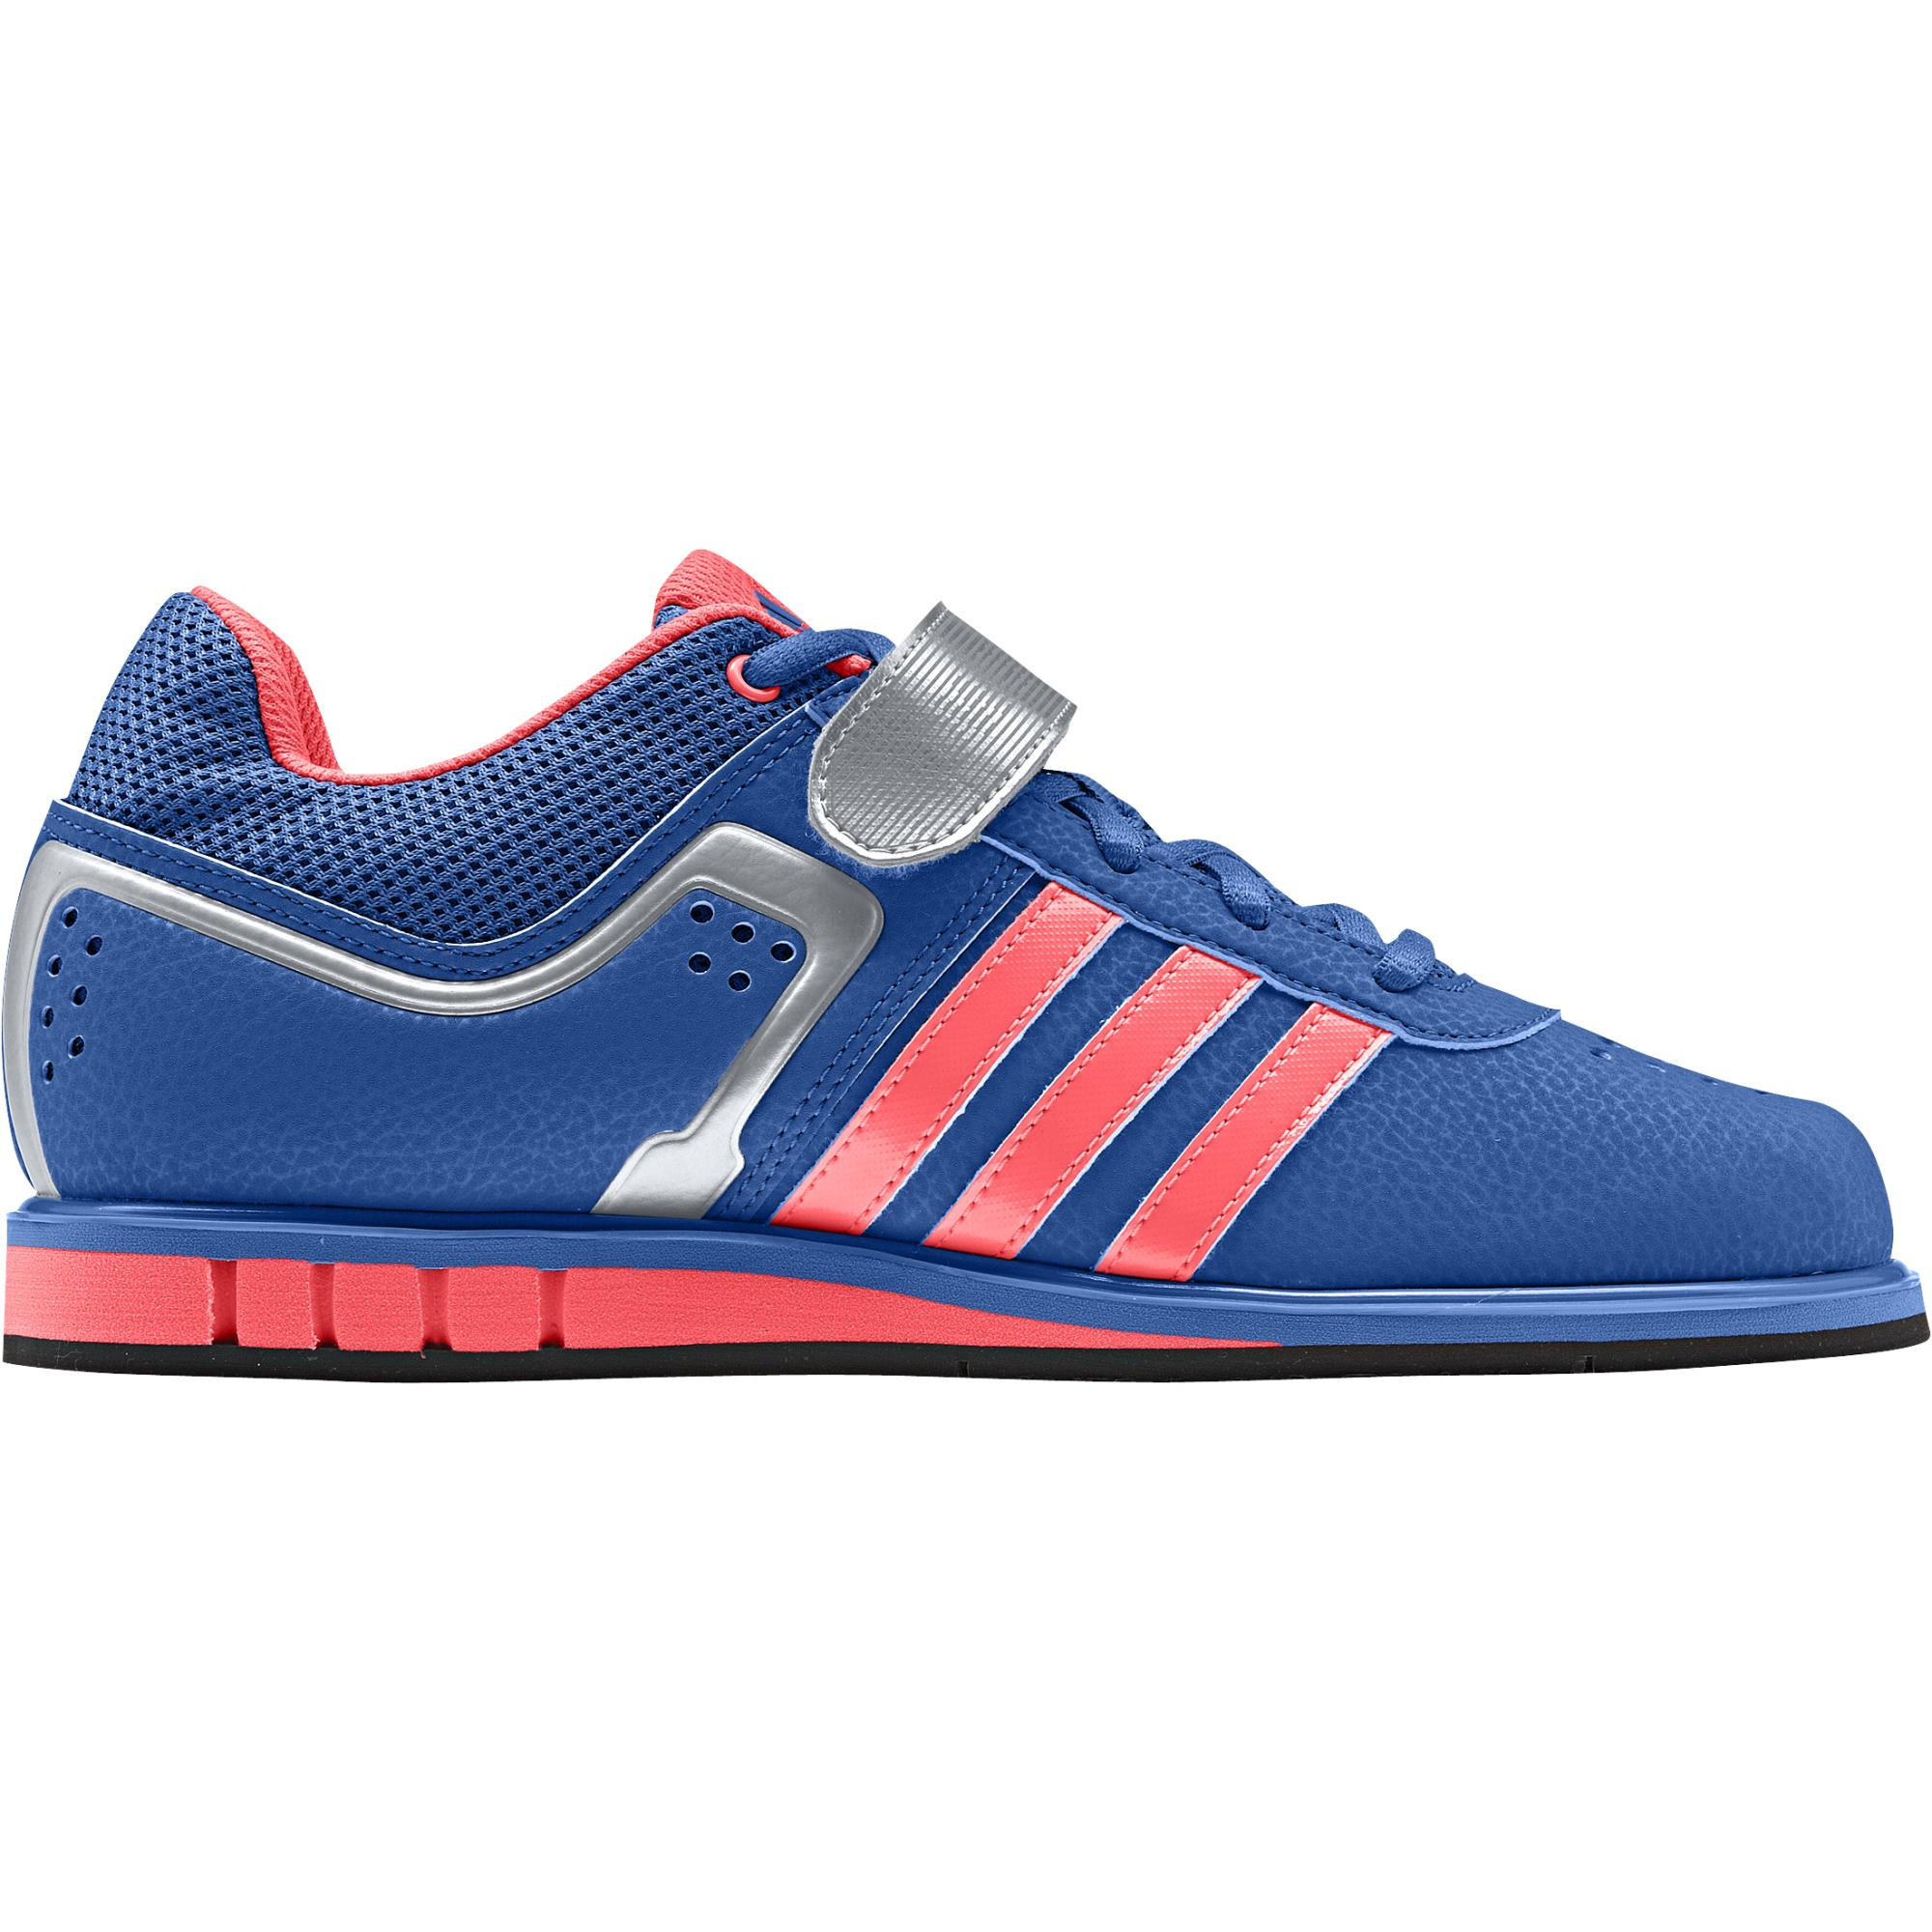 adidas powerlift trainer 2 australia